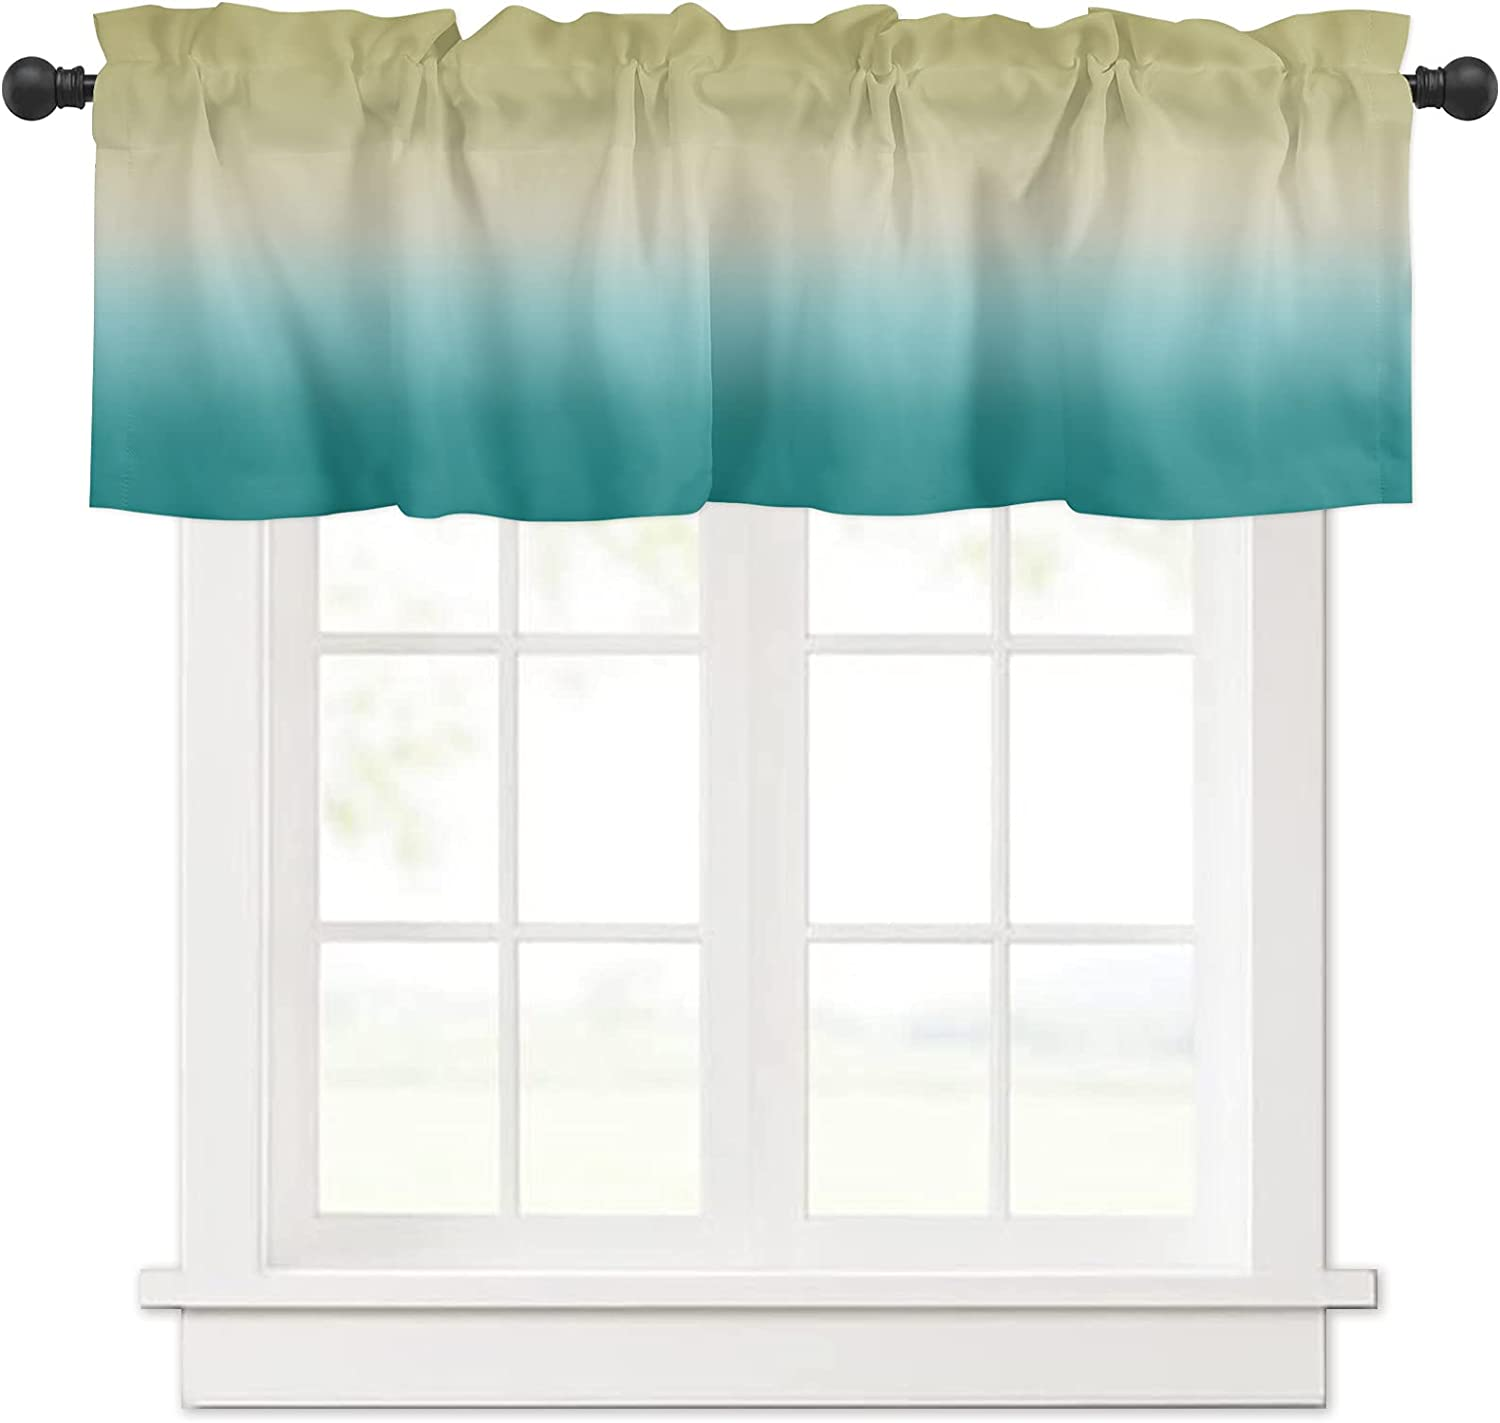 Ombre Credence Yellow Turquoise Cyan Gradient Curtain for Window Valances Bargain sale